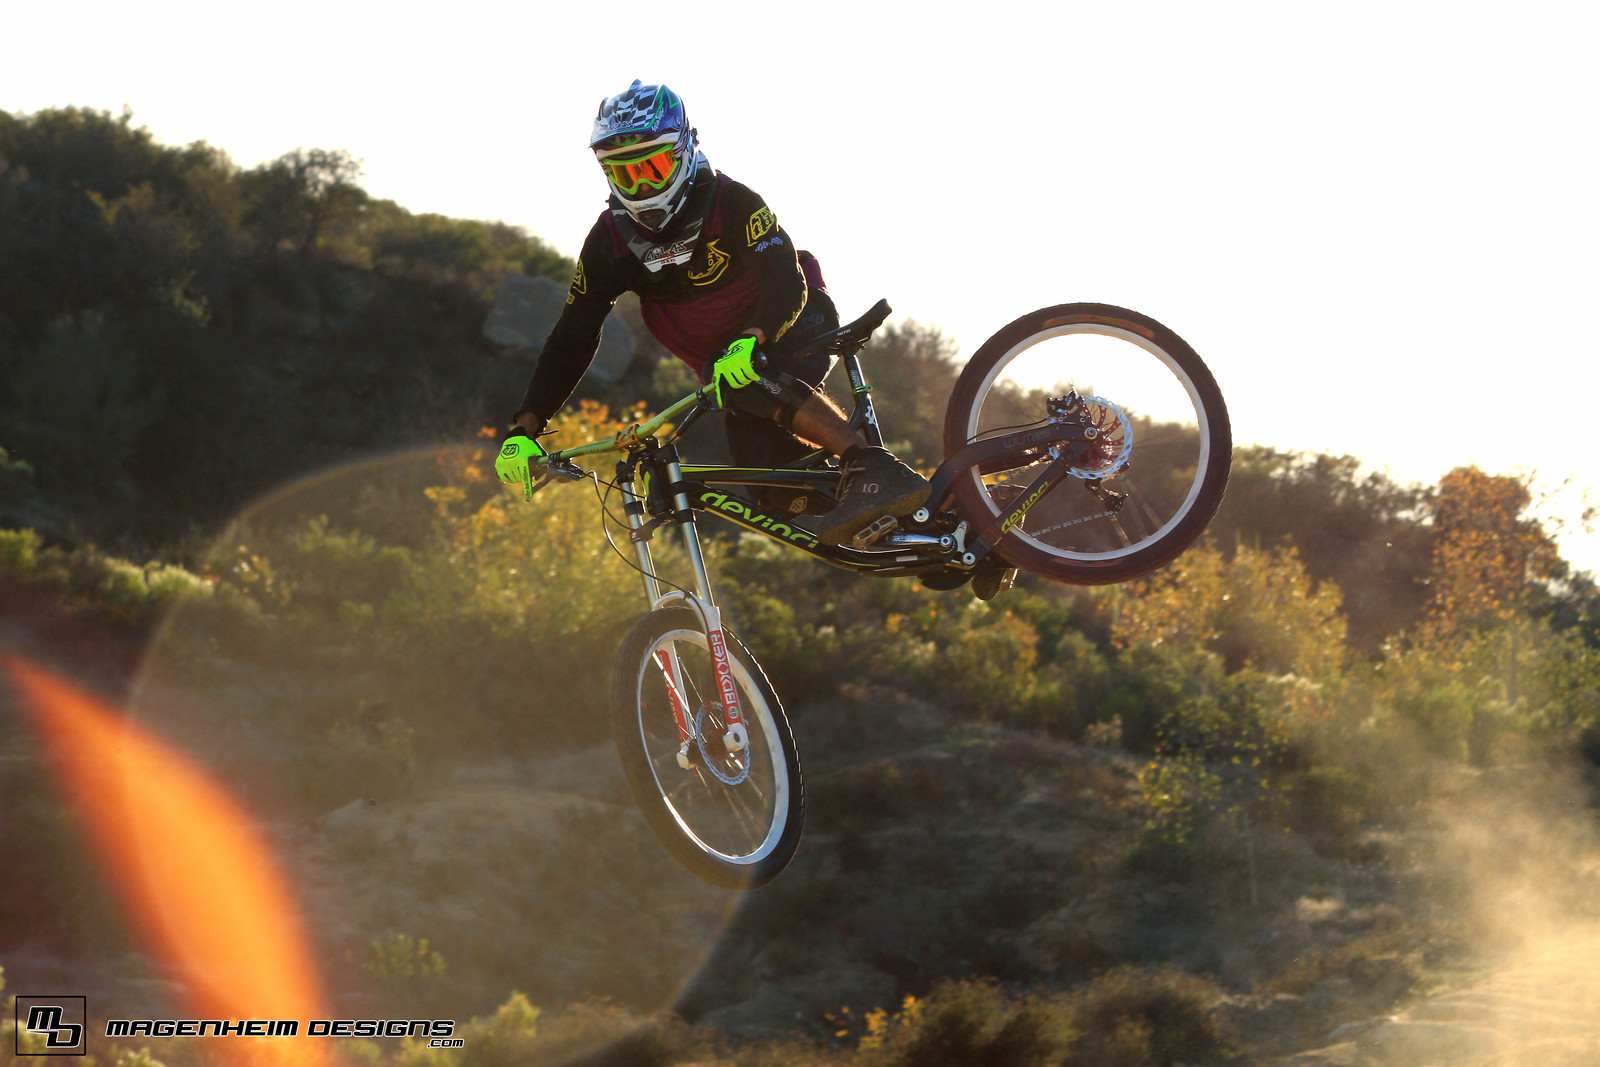 Paul Marcynyszyn whipping in the golden light - krismag117 - Mountain Biking Pictures - Vital MTB